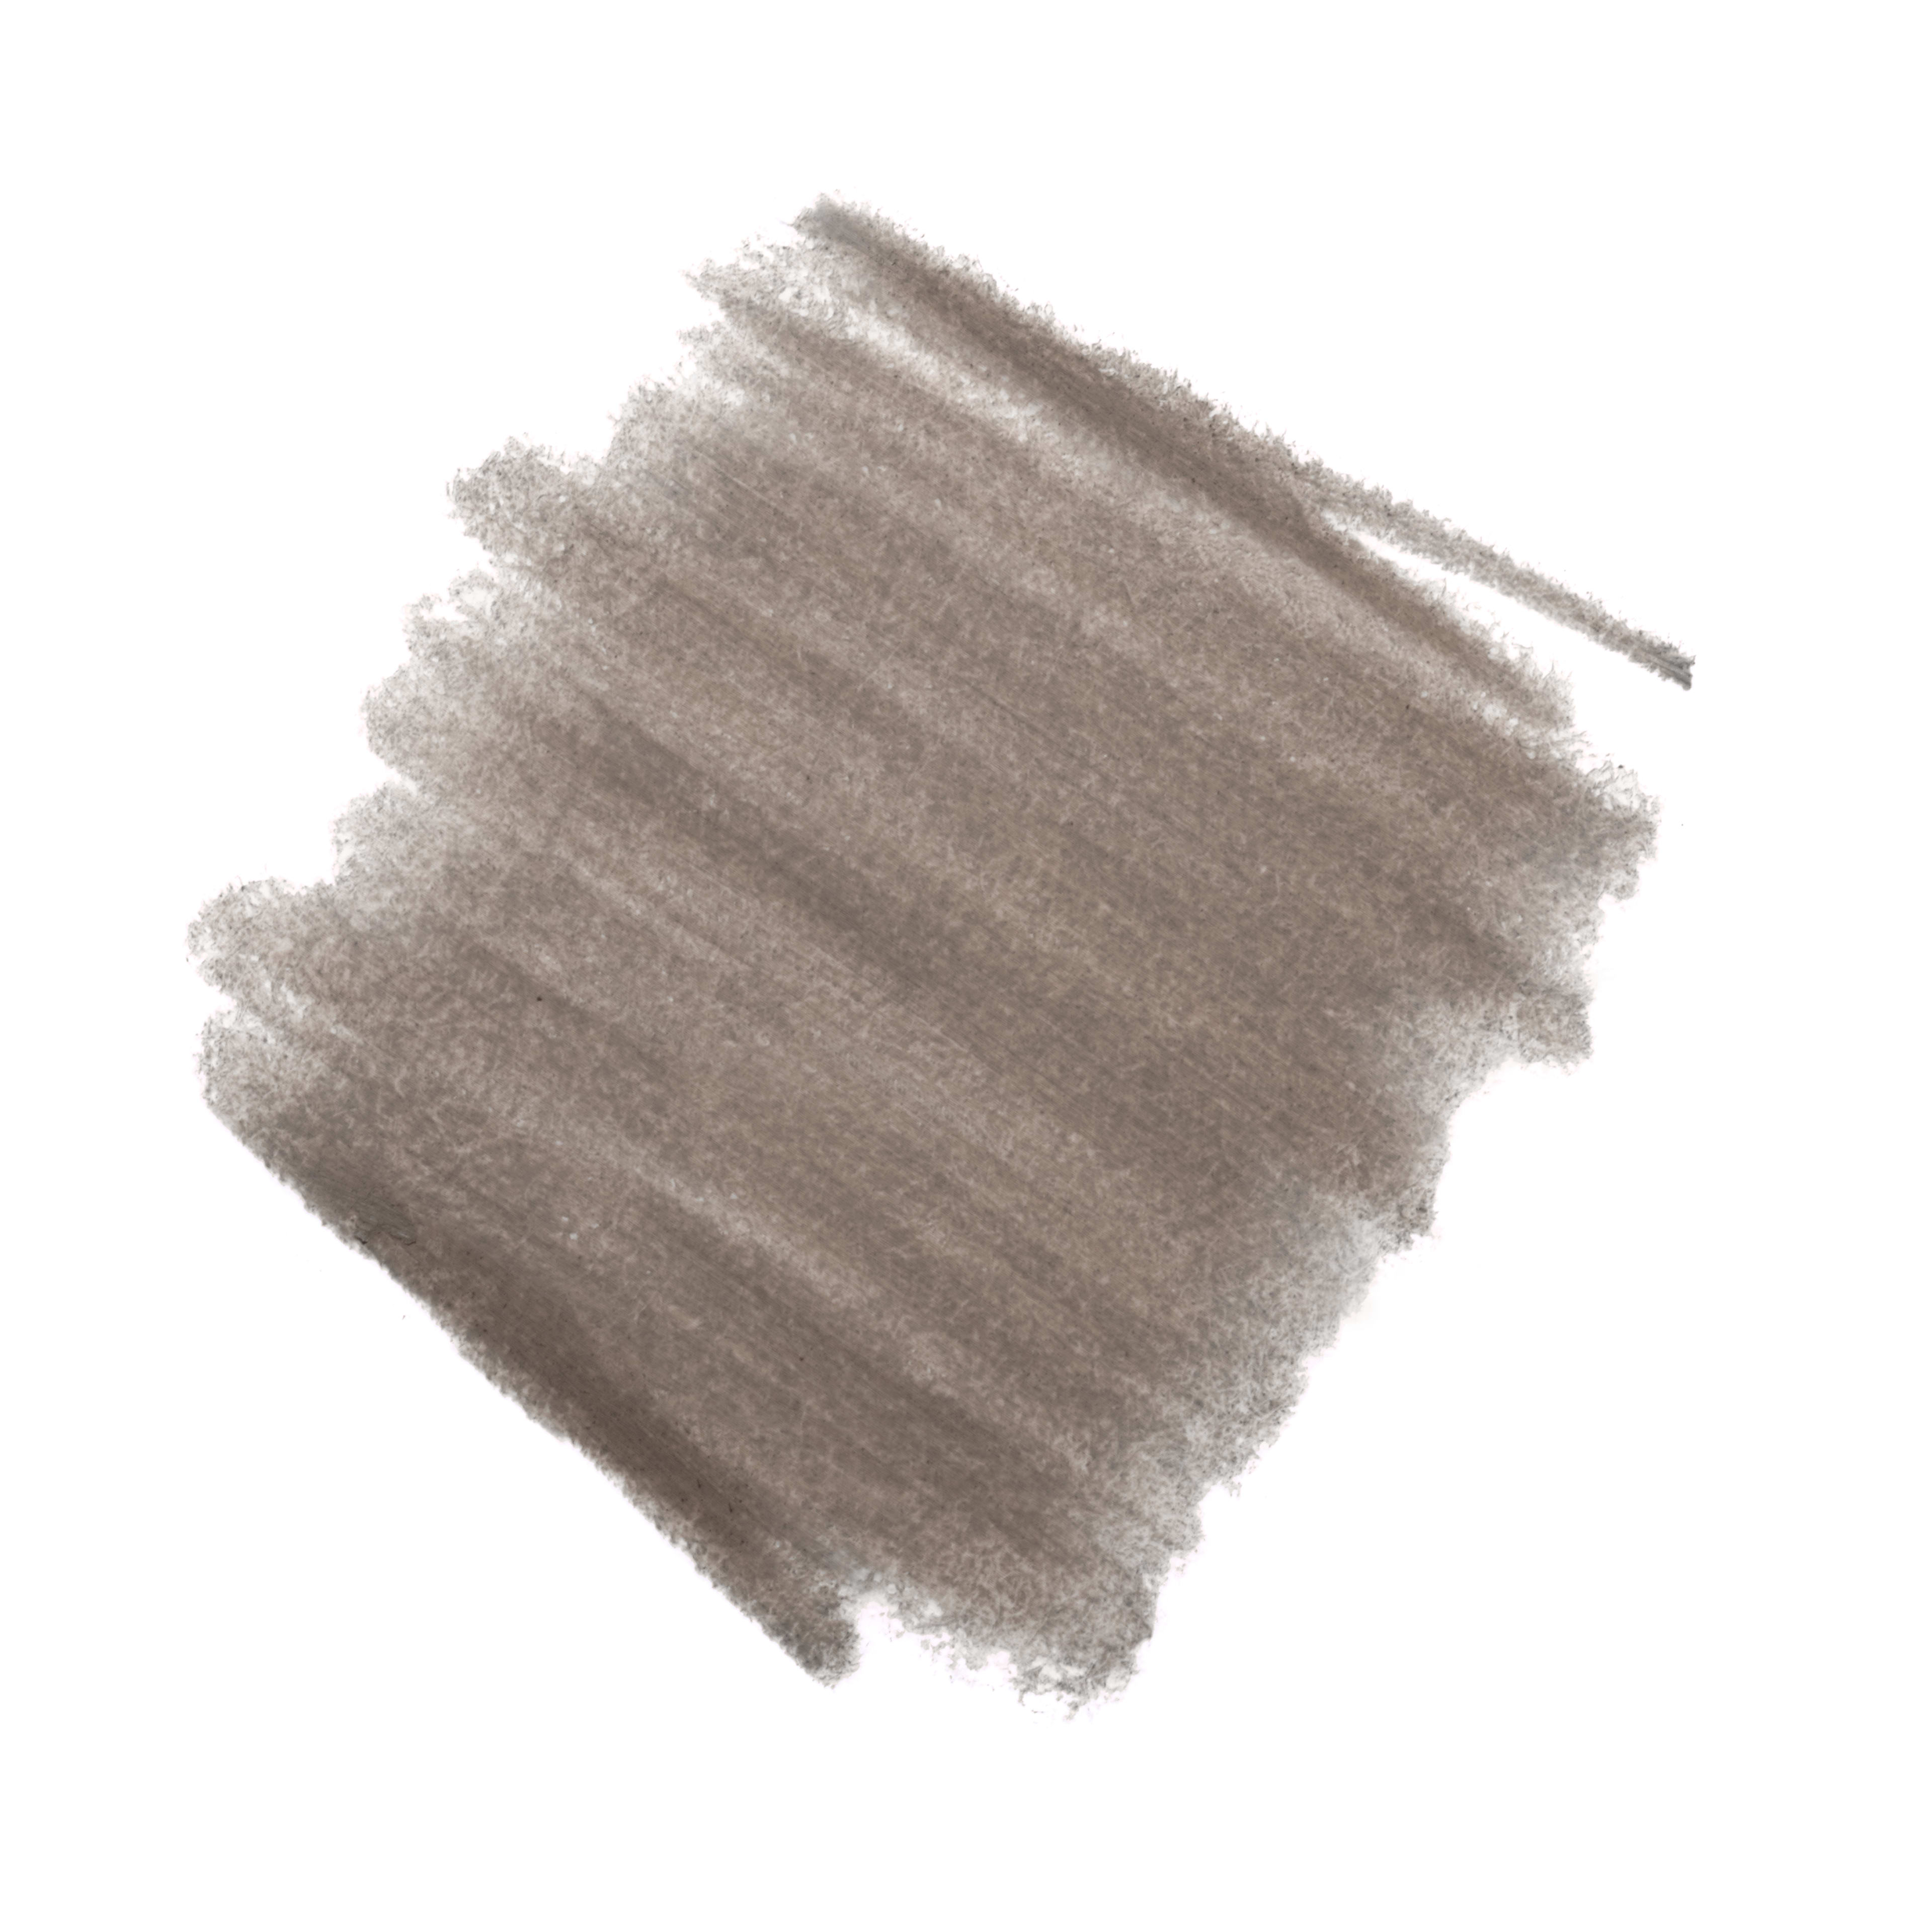 CRAYON SOURCILS - makeup - 0.03OZ. -                                                                 alternative view - see full sized version